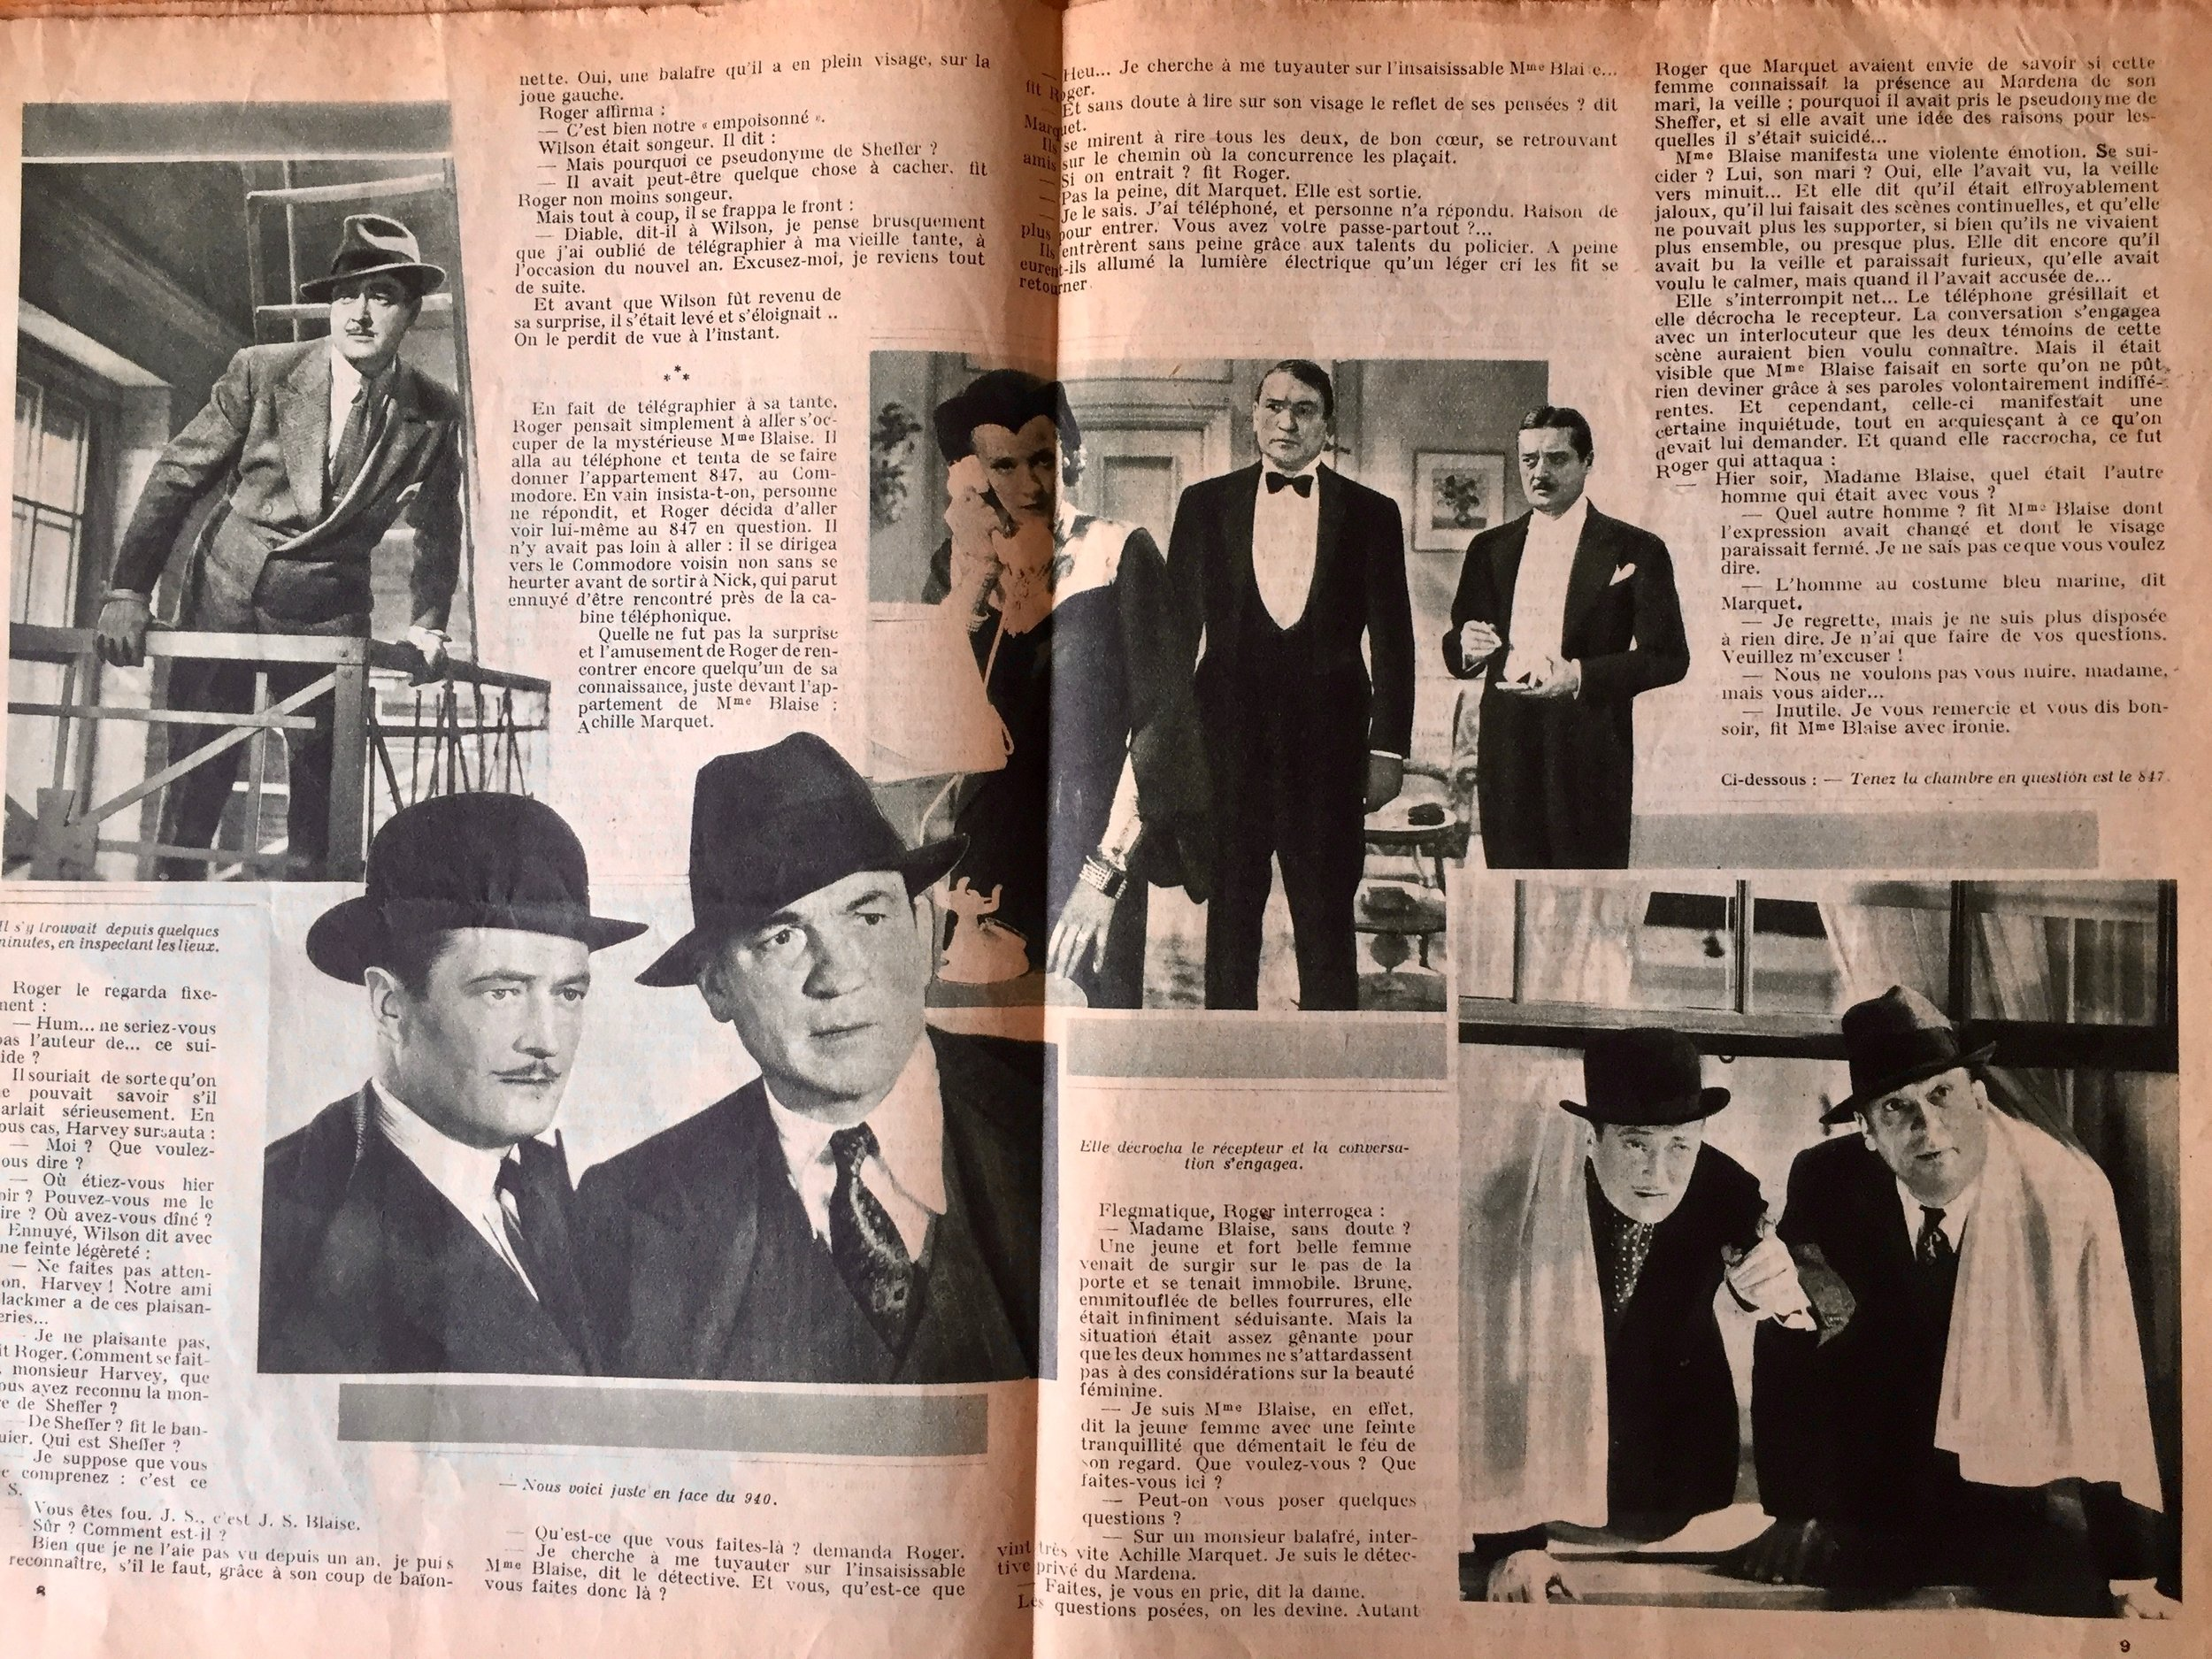 The illustrated center spread of the French film script.